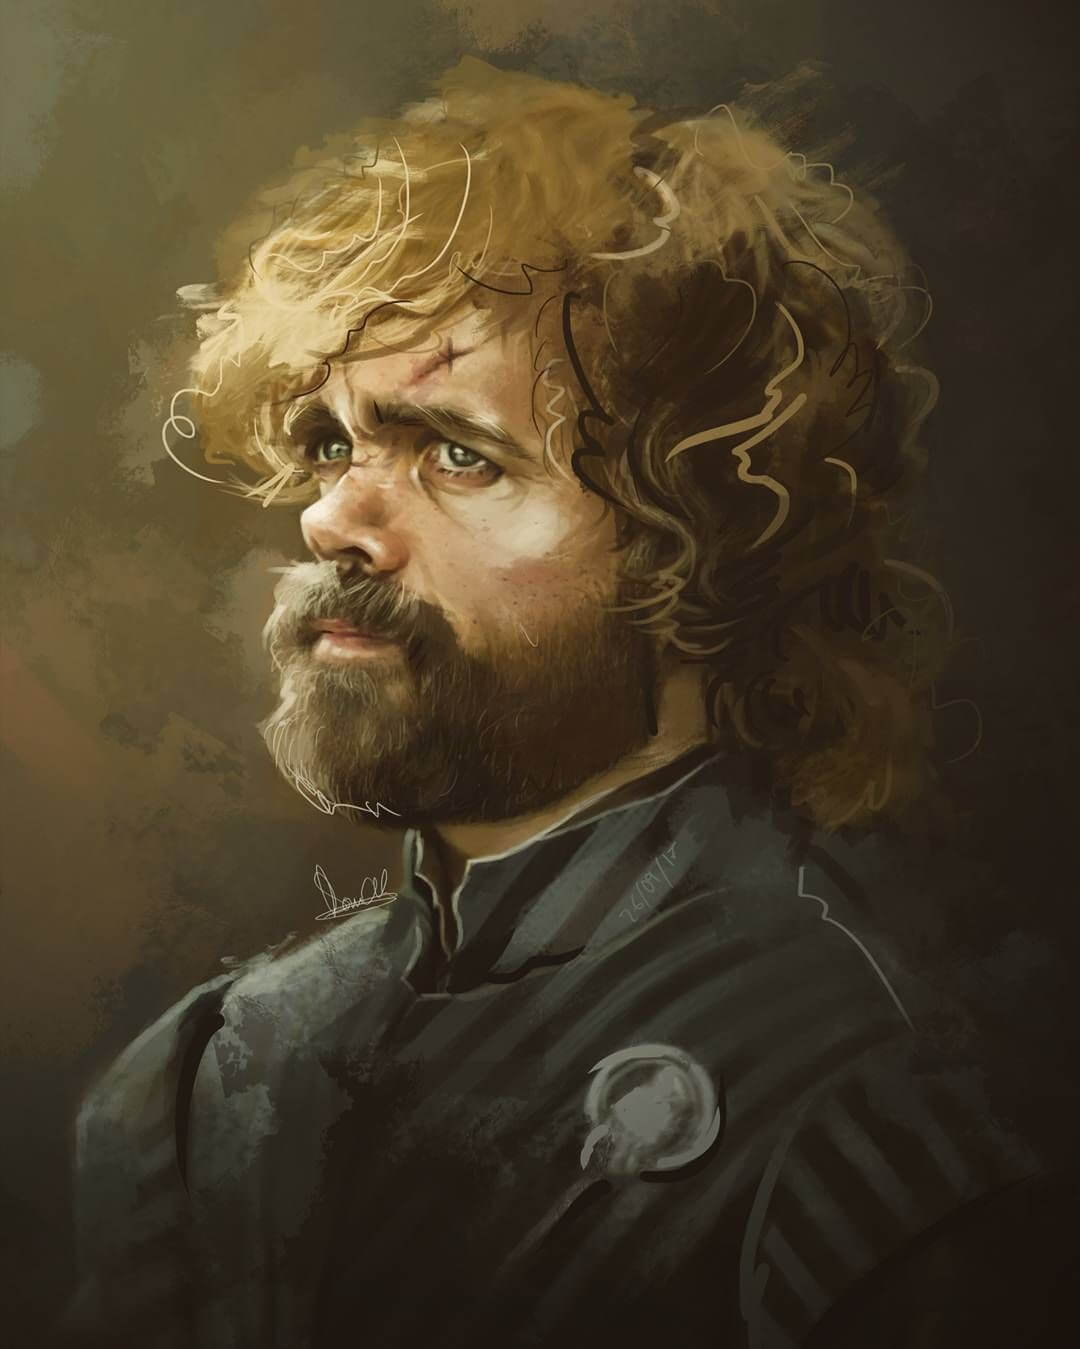 Tyrion Lannister by Federico Dalix